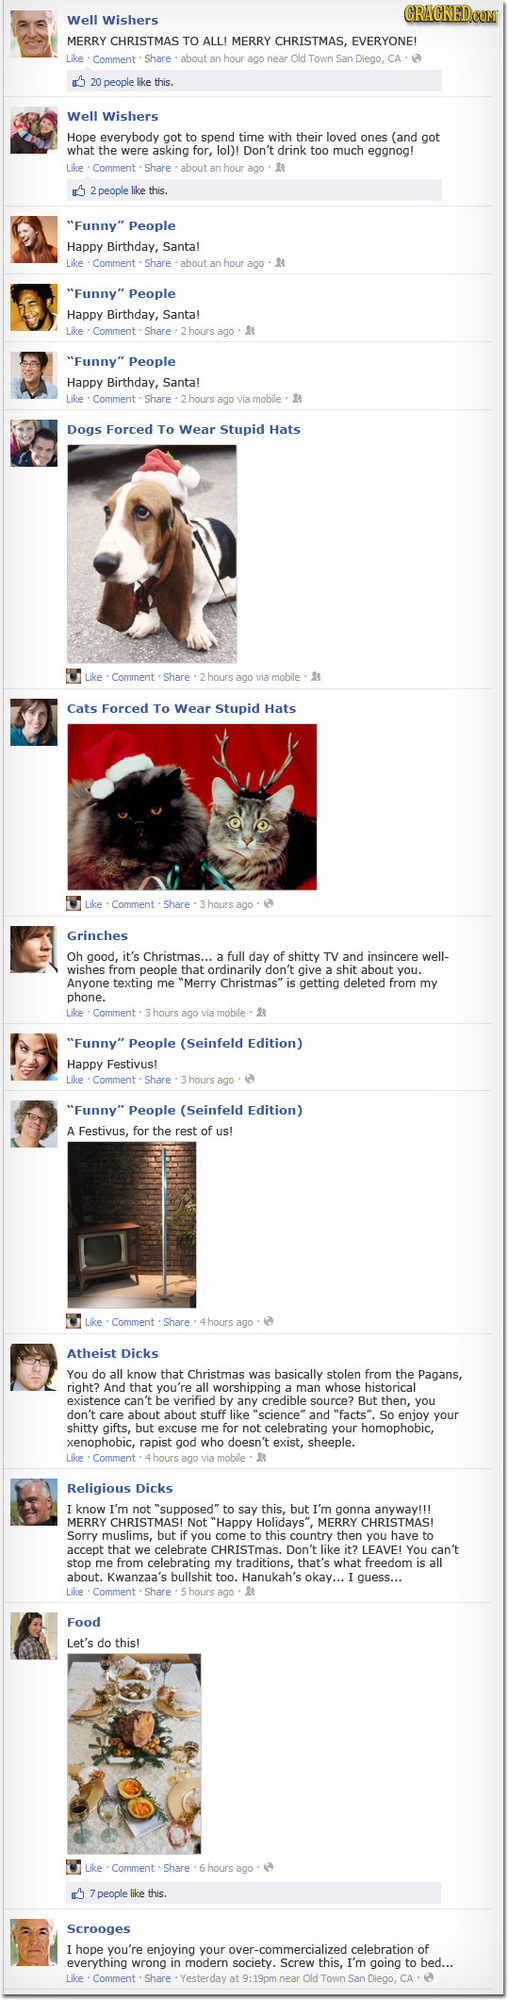 The 10 Types of Facebook Posts on Christmas Day